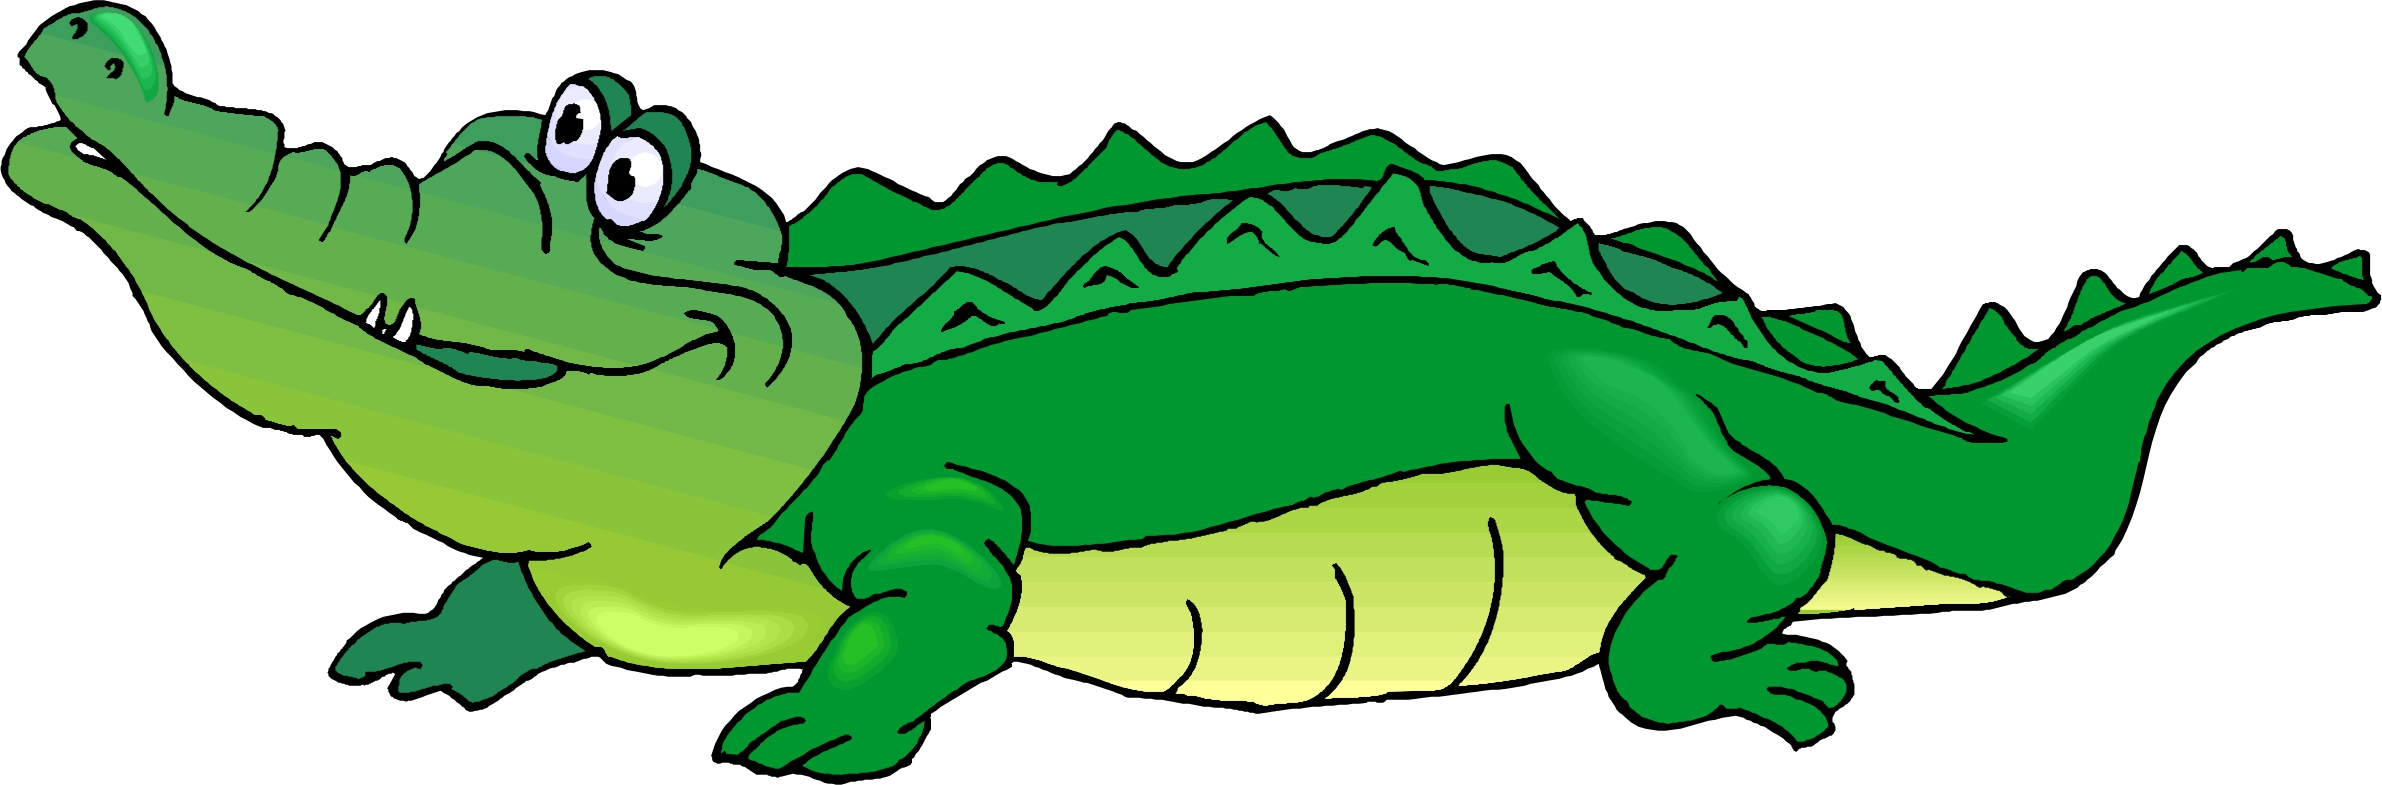 Crocodile Cartoon Images - Cliparts.co - photo#20